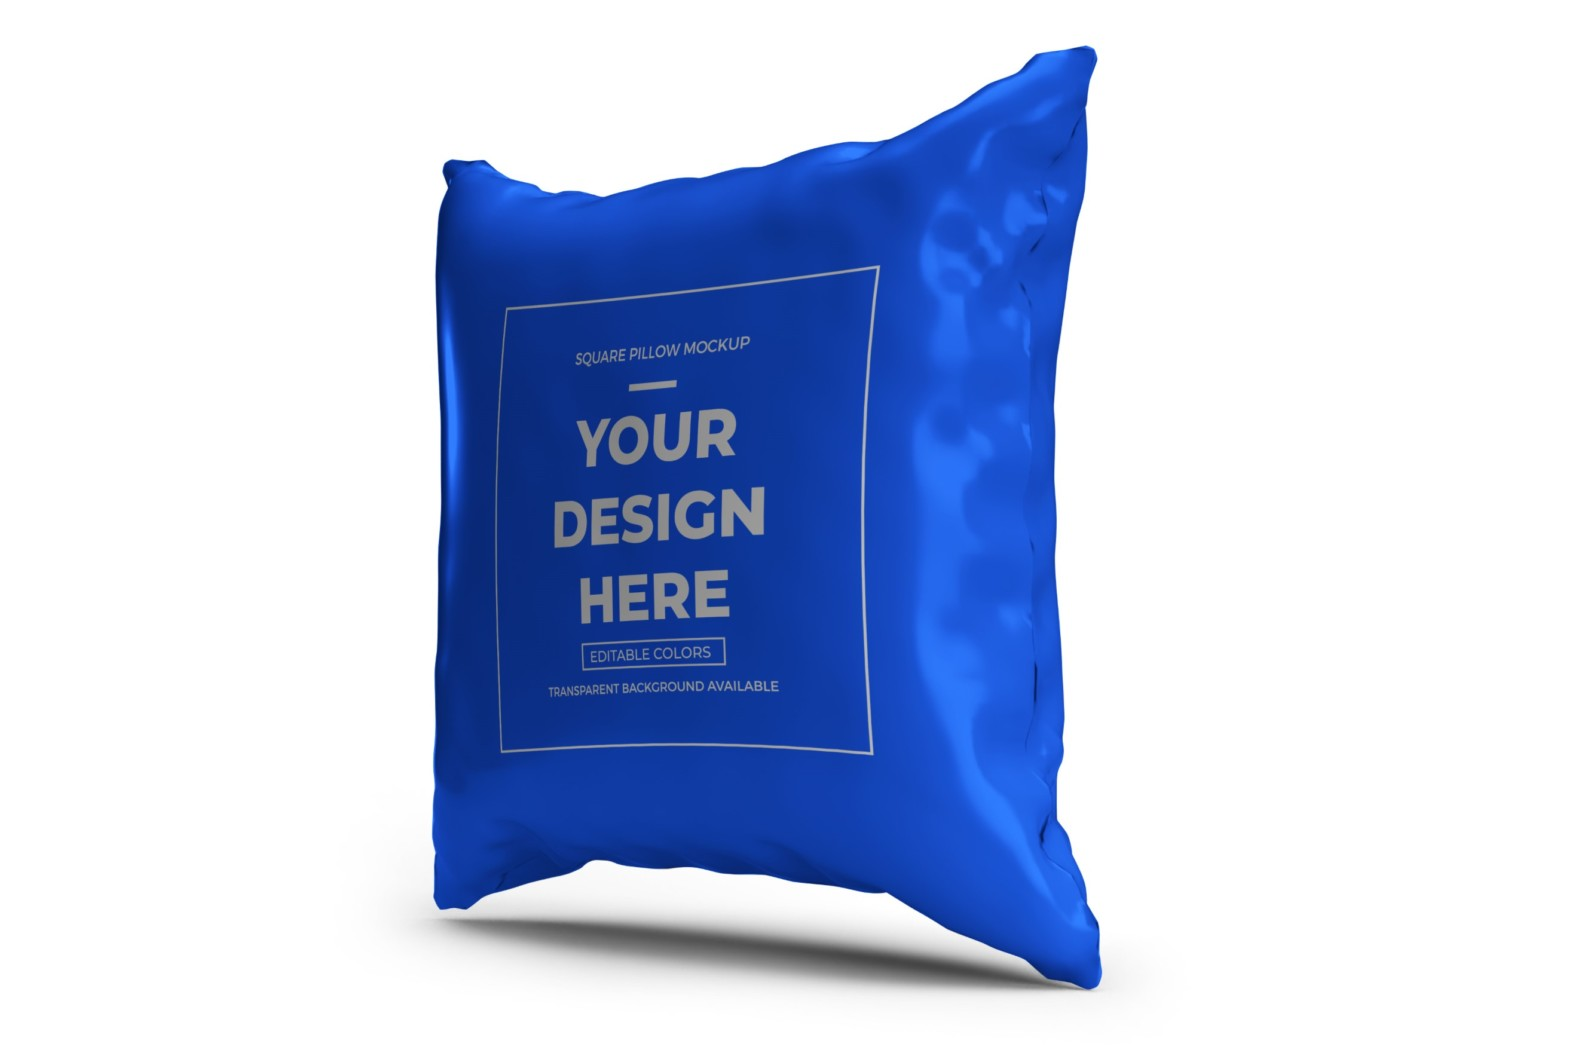 Square Pillow Mockup Template Bundle - 07 57 scaled -